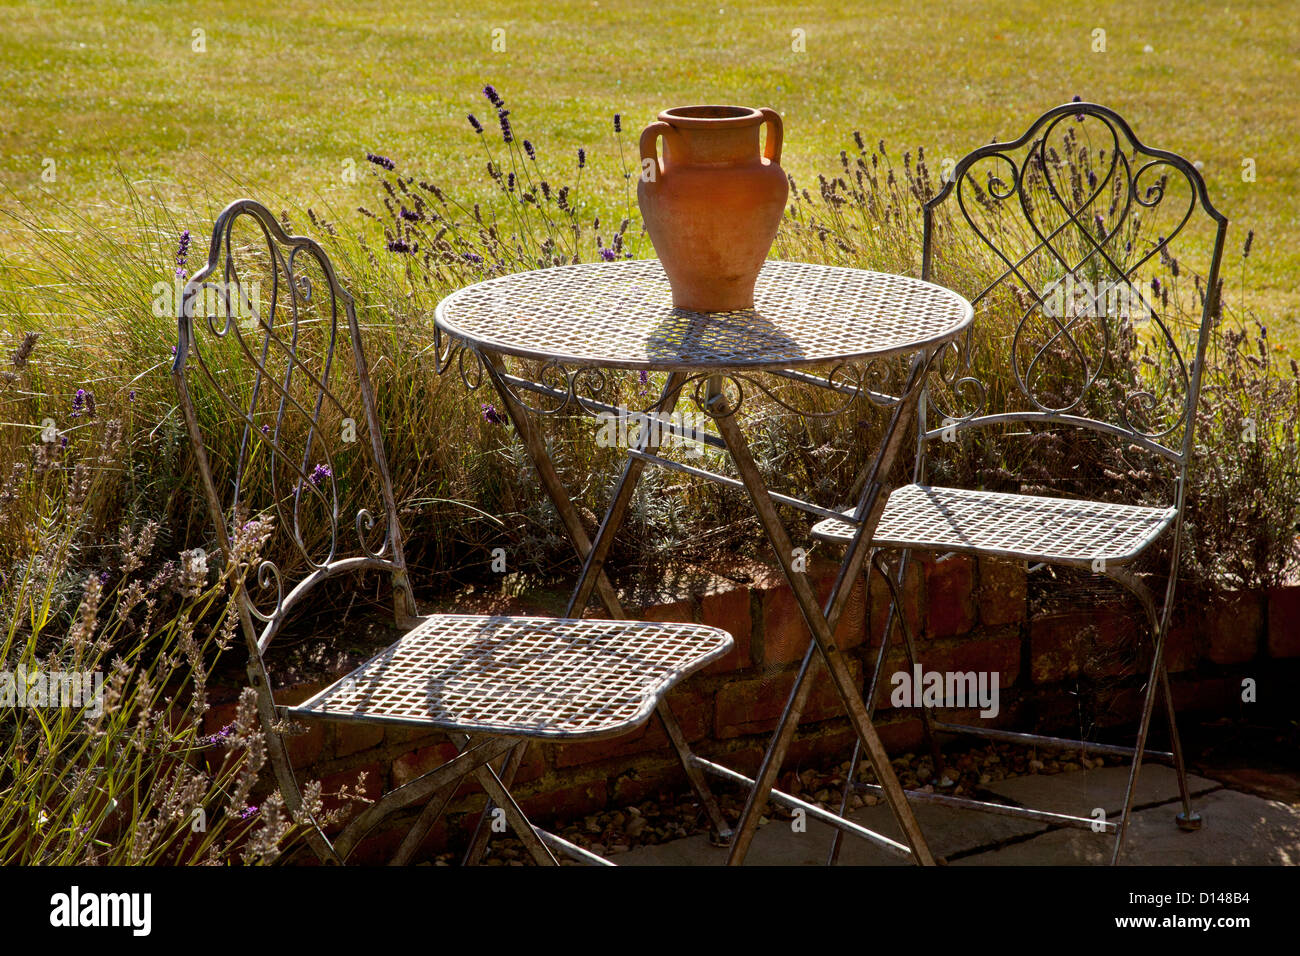 Metal French Style Garden Furniture Table And Chairs With Terracotta Pot In  Summer English Garden